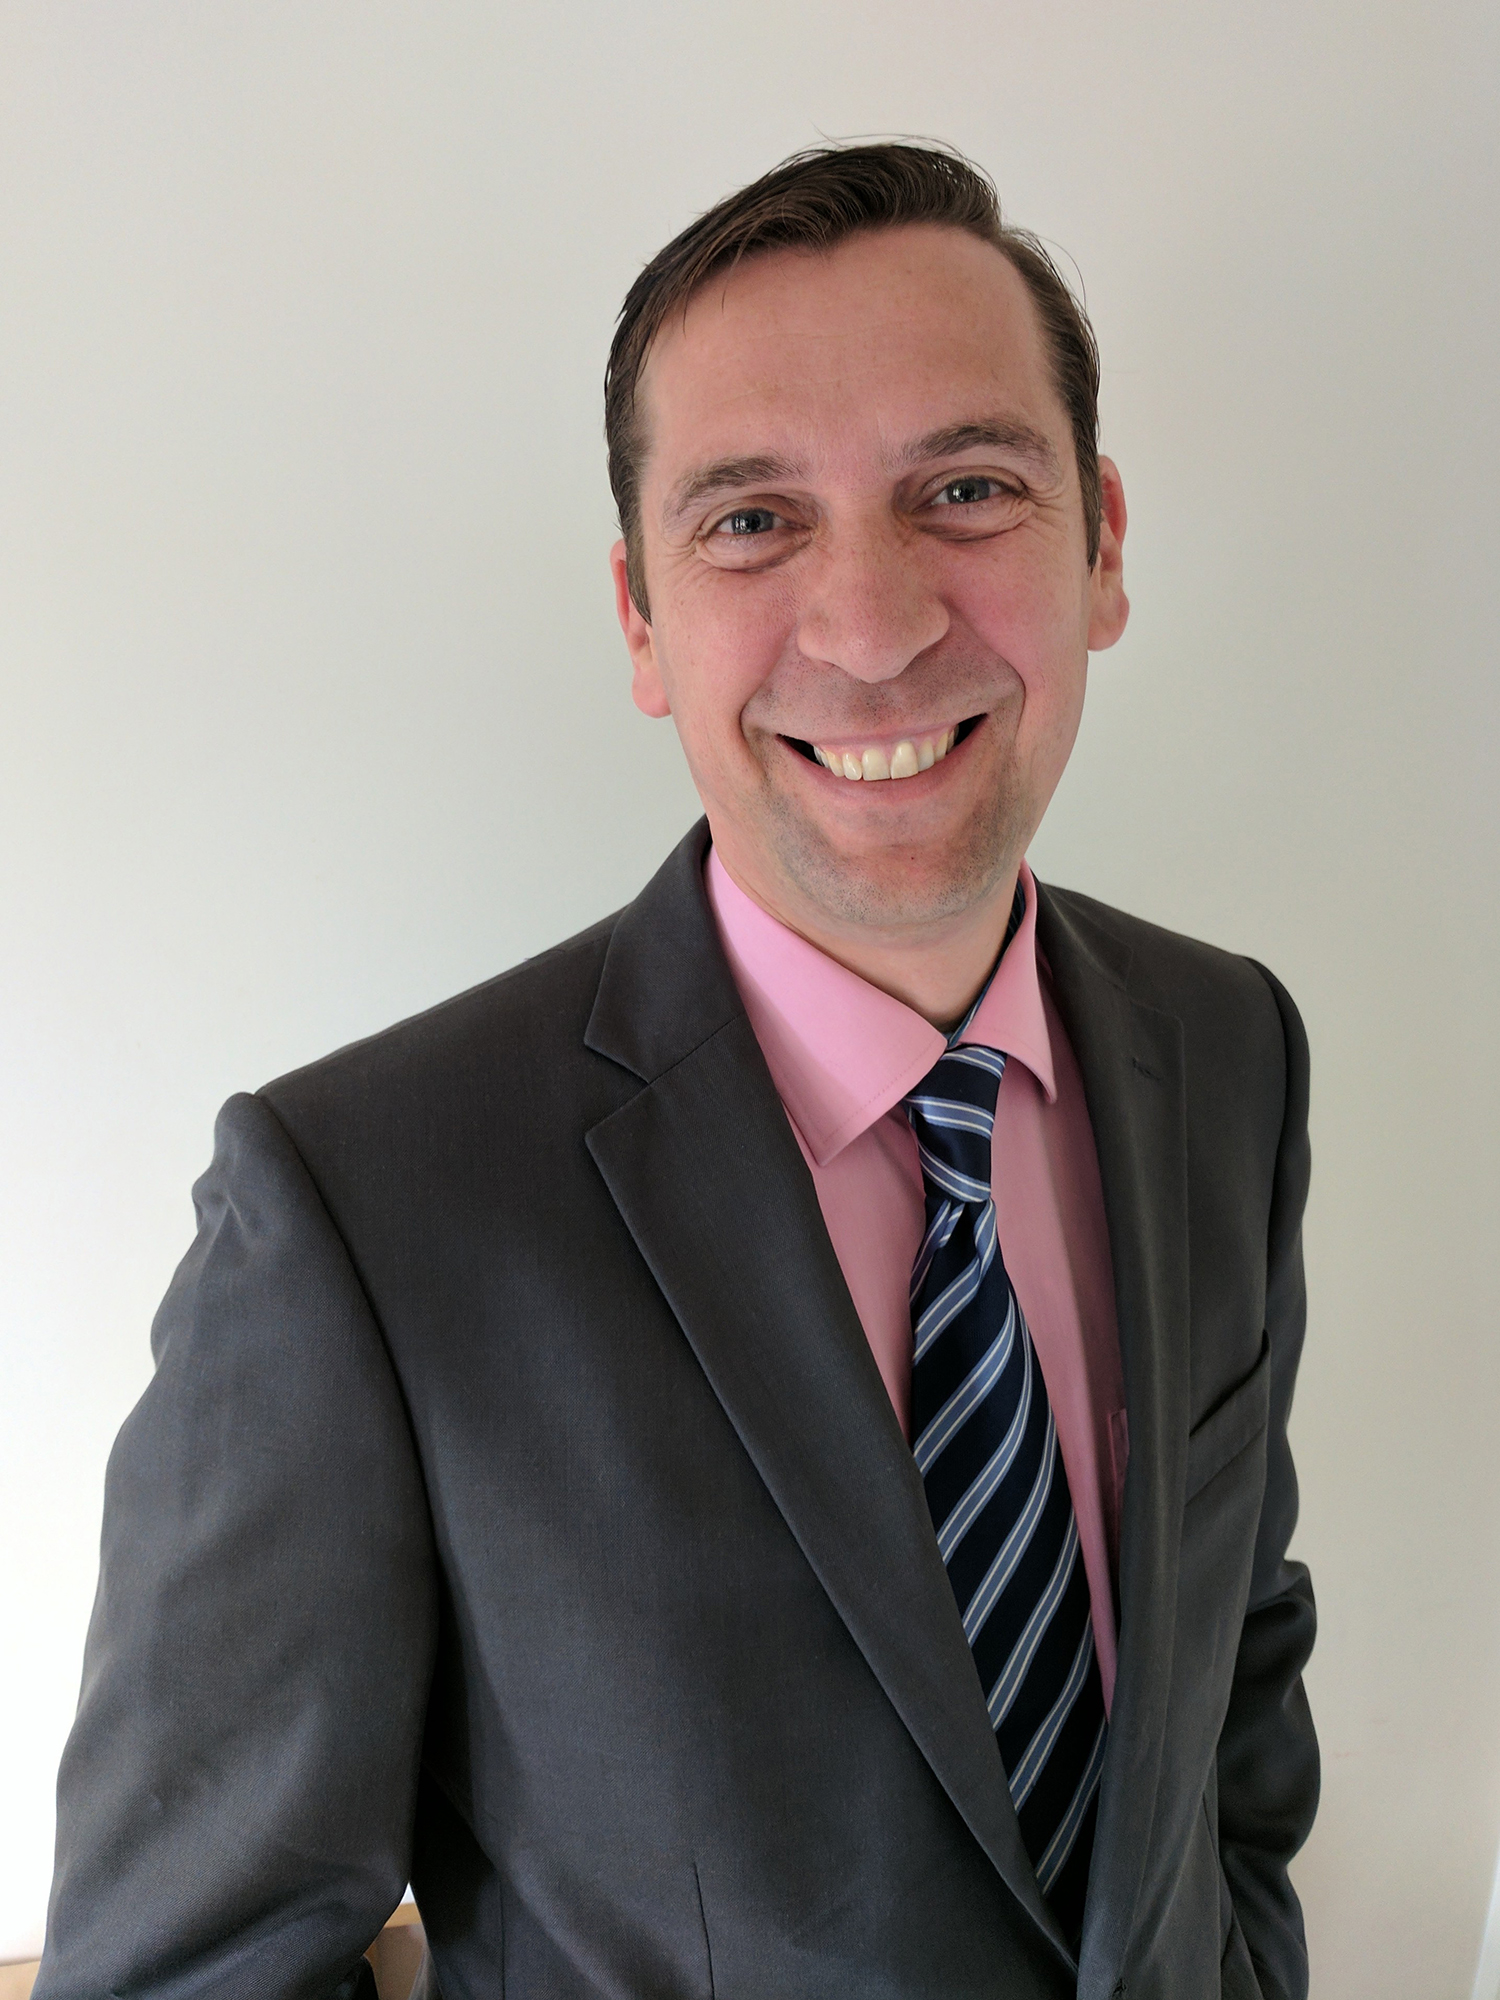 Klarius appoints new French Business Development Manager